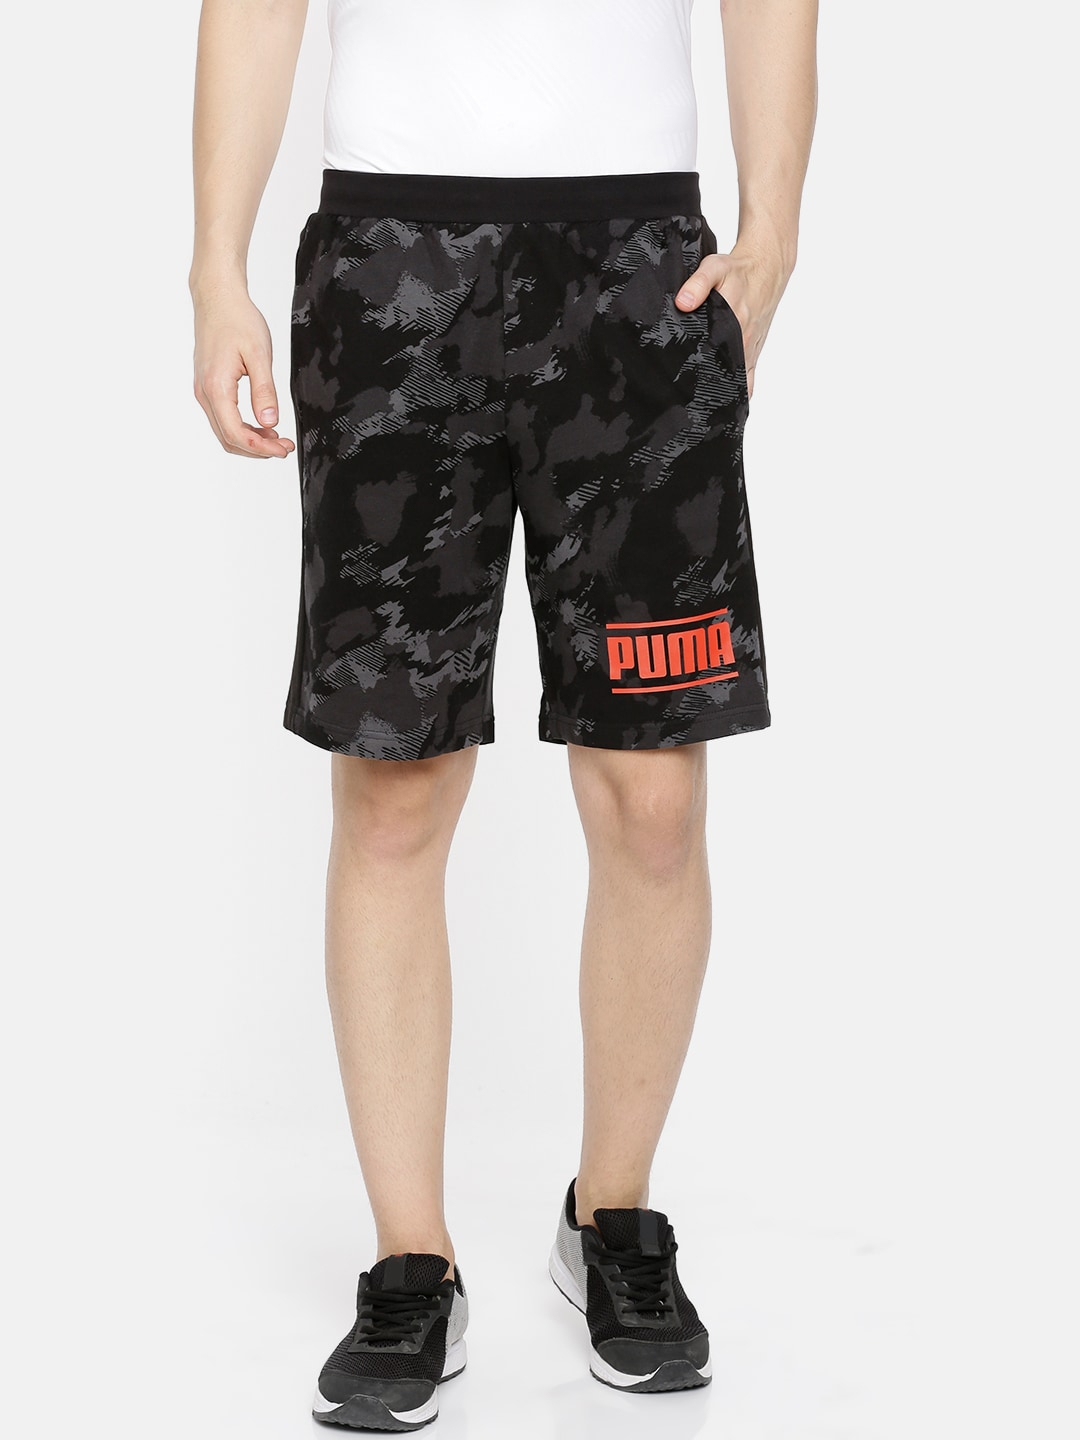 c54fb1f4e9ec Printed Shorts - Buy Printed Shorts Online in India